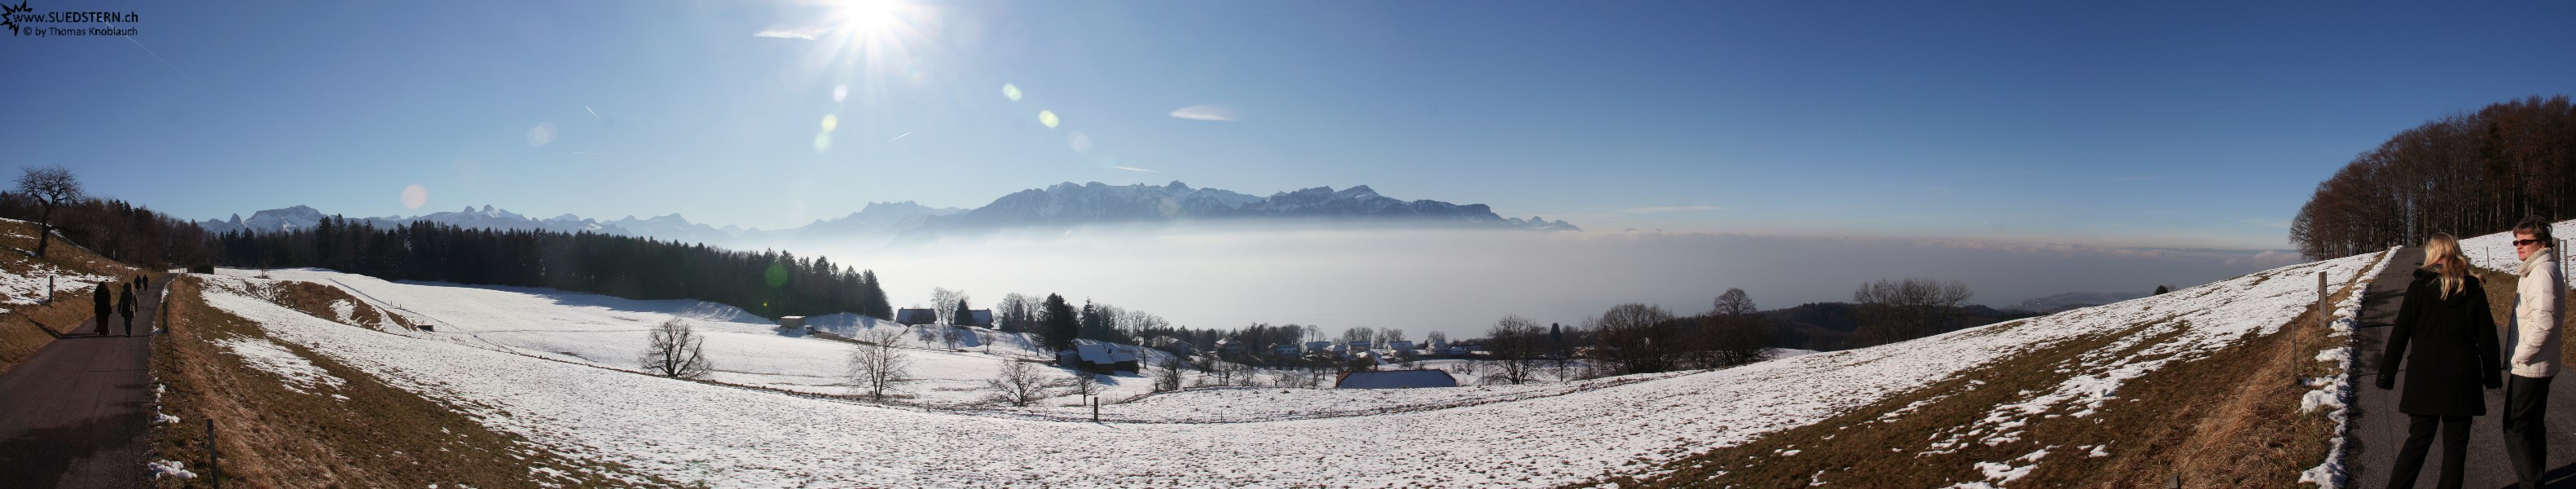 2007-12-27 - Panorama near Mont-Pèlerin, Switzerland